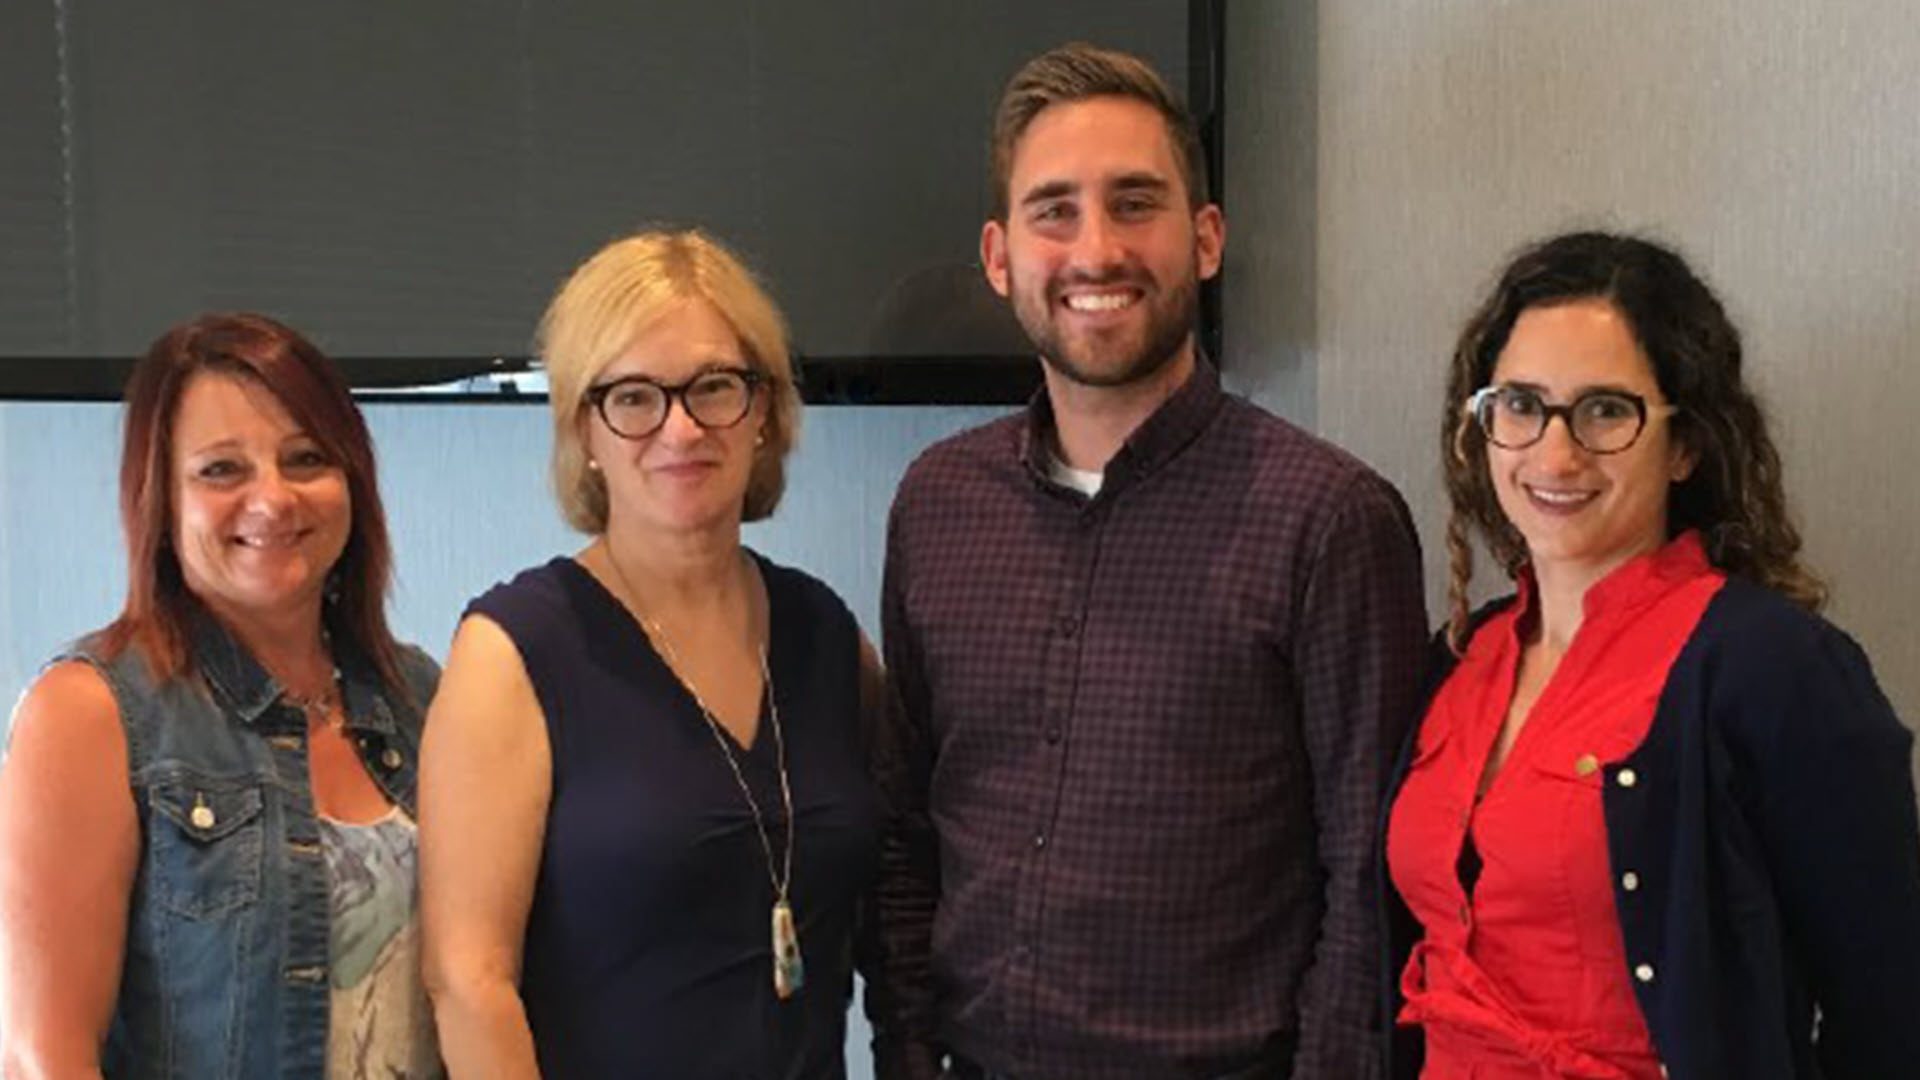 Members of Family First Family Health Team's mental health team who were recognized by the Association of Family Health Teams of Ontario with a Bright Lights award for their contributions in increasing access to psychotherapy services